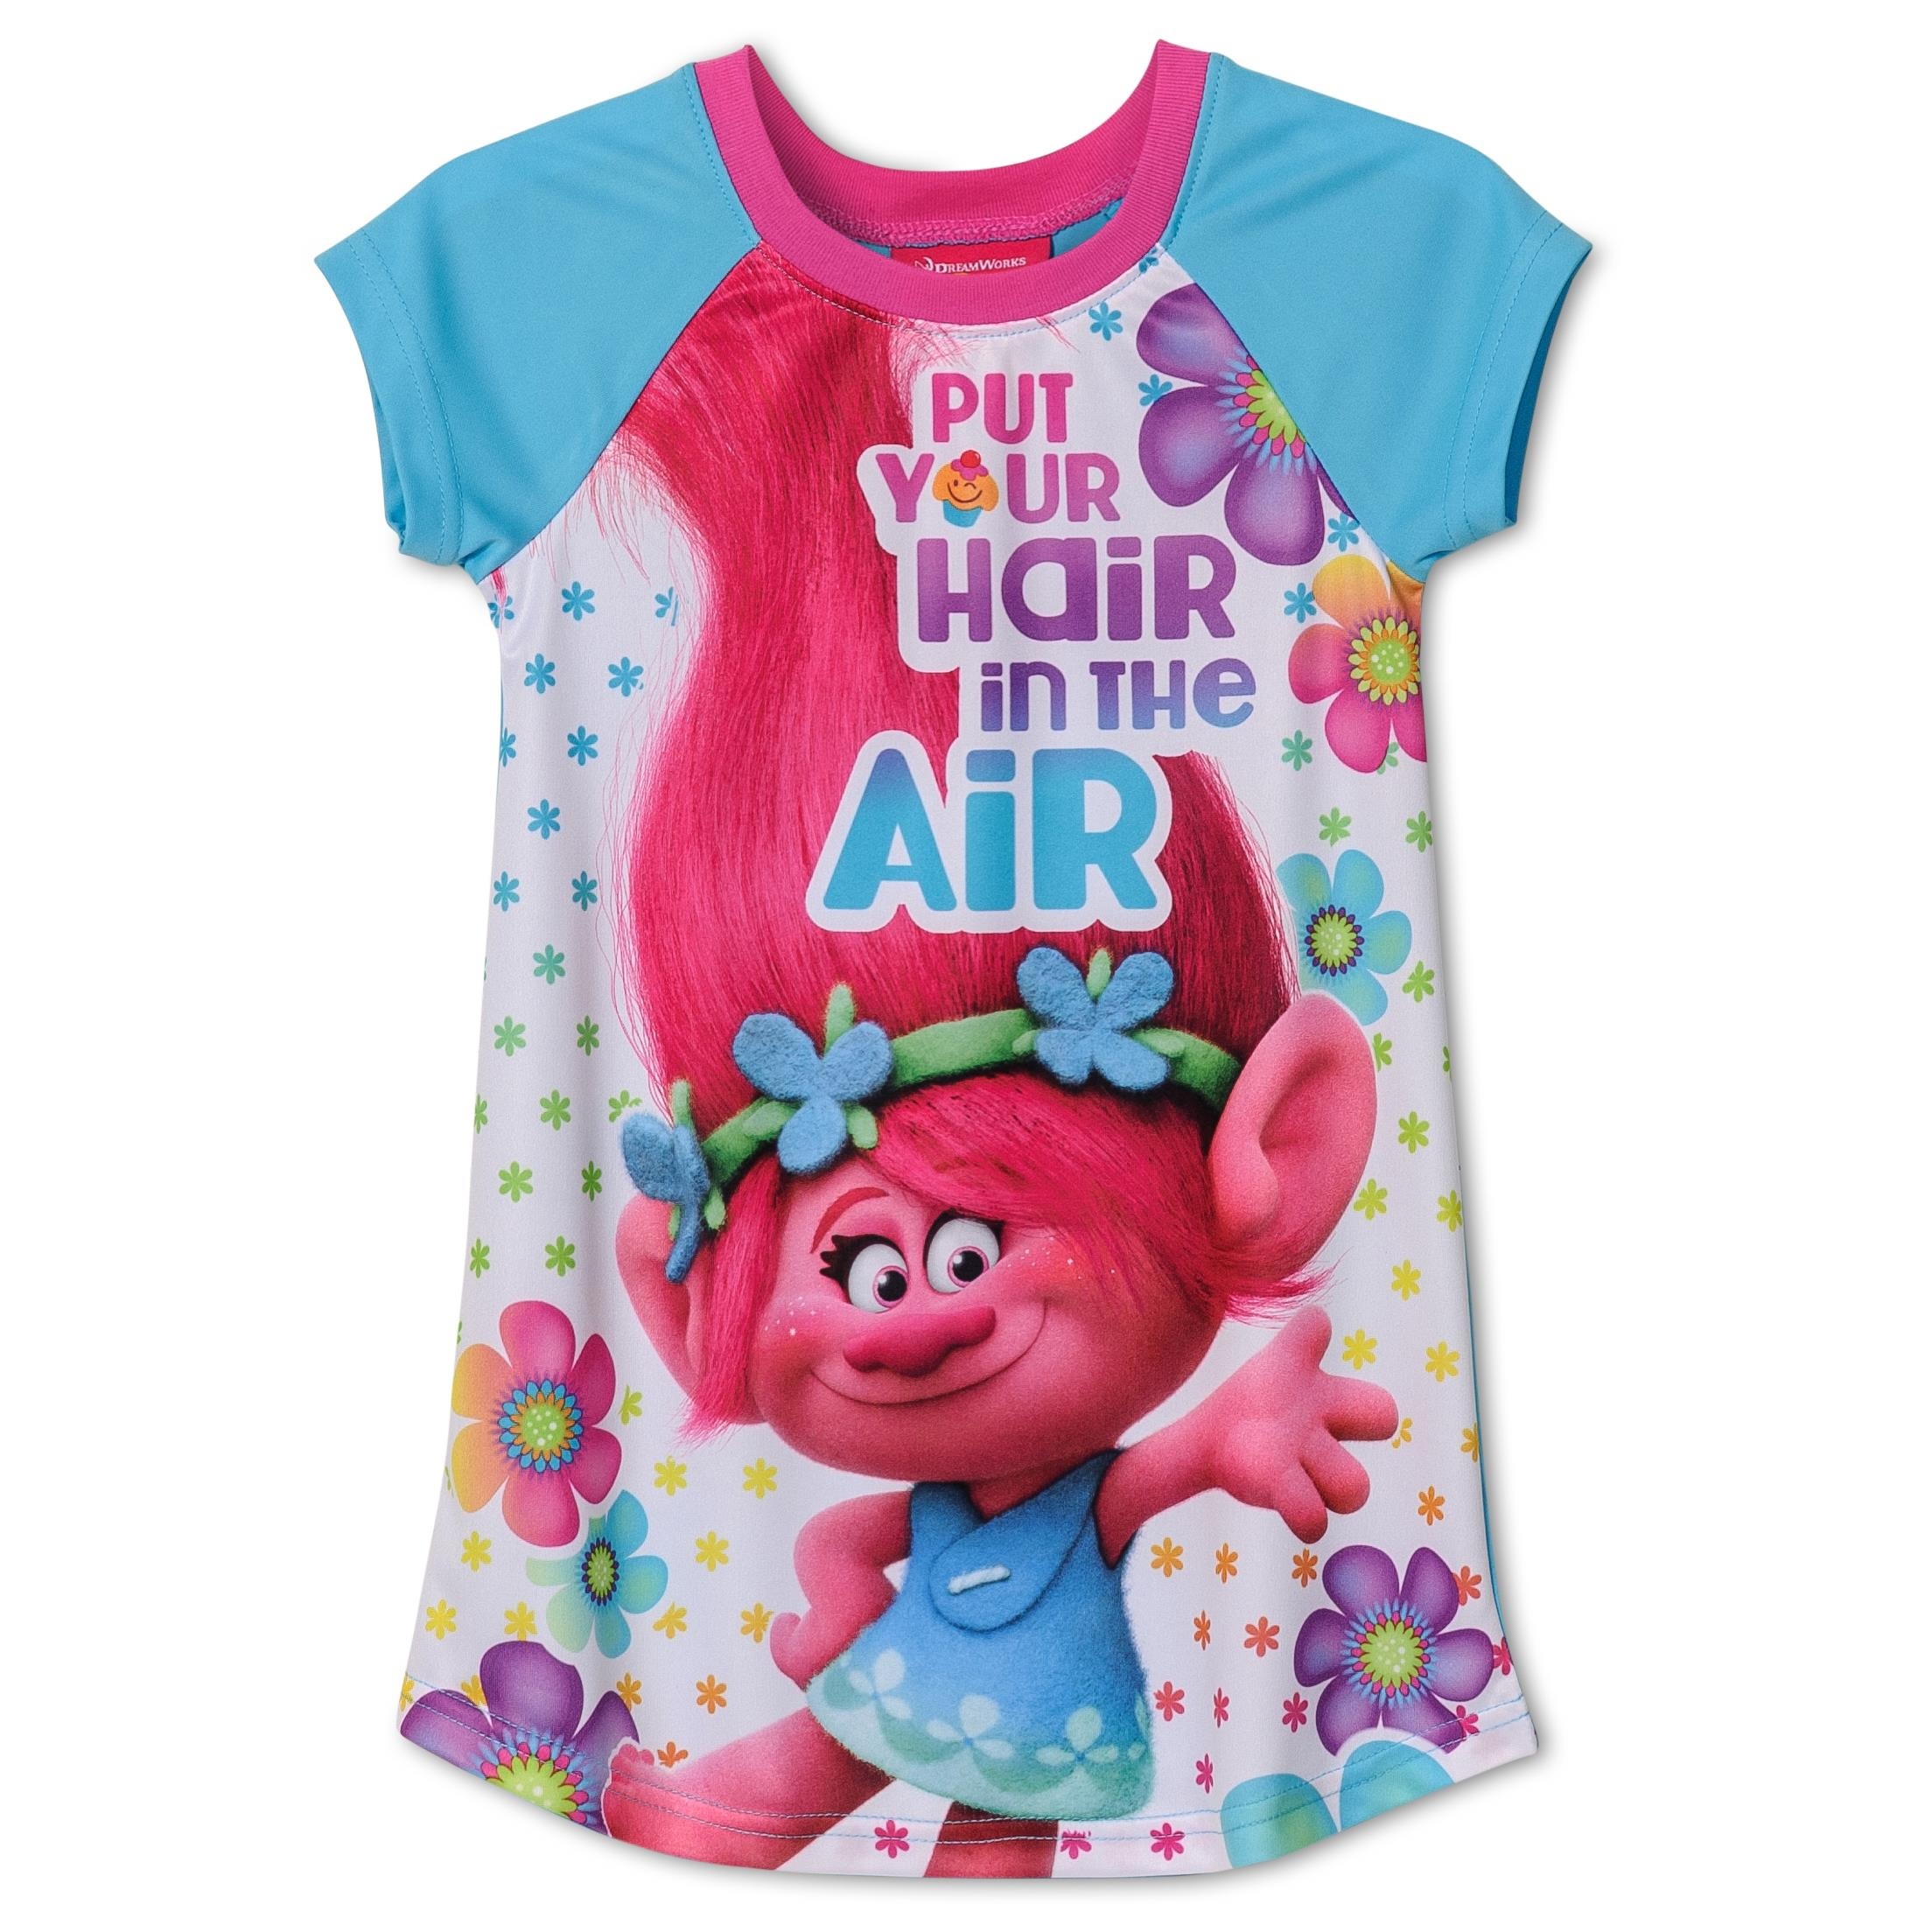 Dreamworks Movie Trolls Put Your Hair Up Nightgown for Little Girls